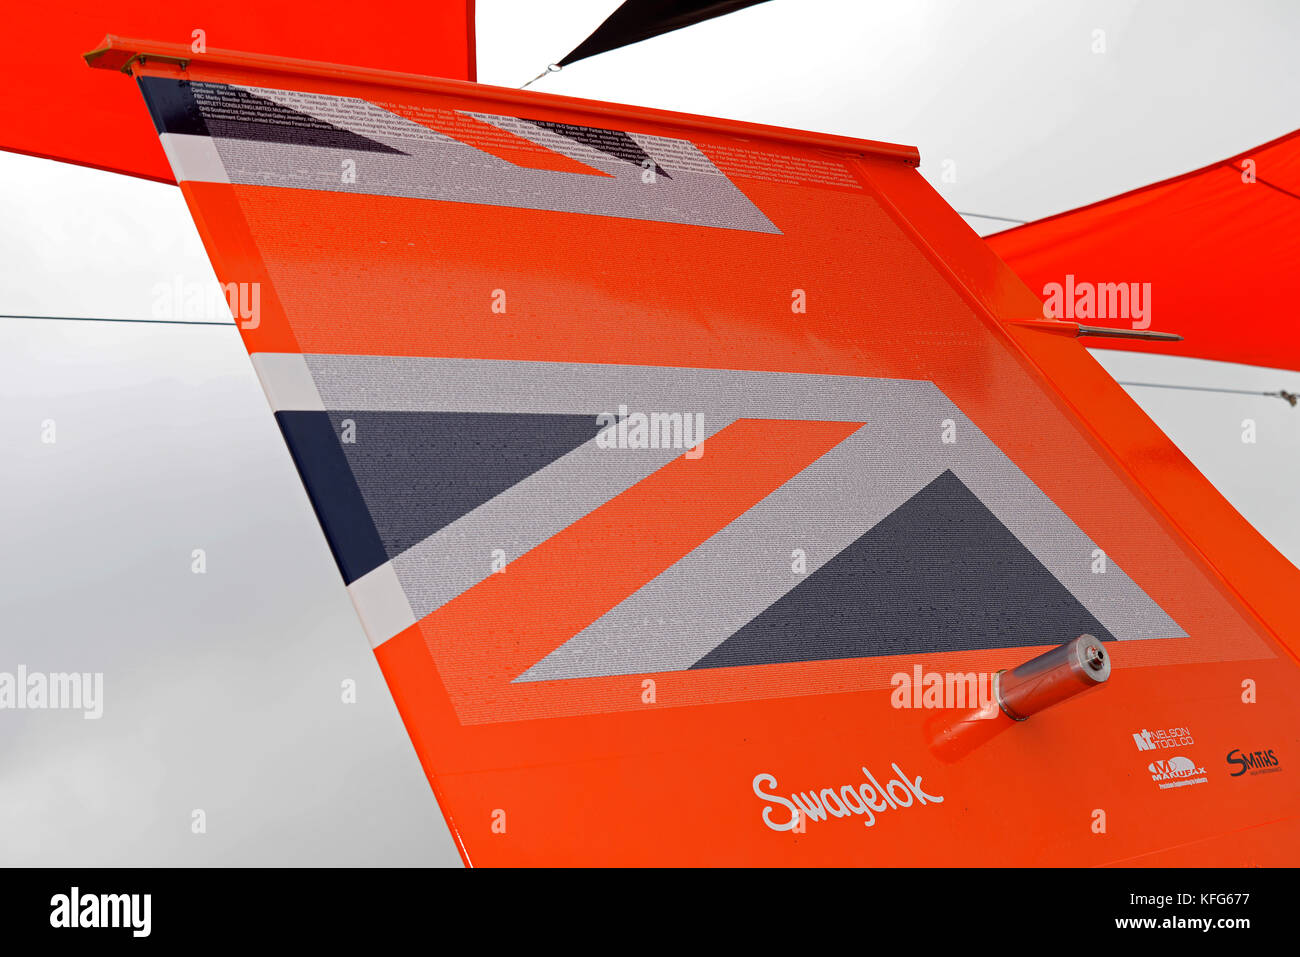 names-on-the-fin-of-bloodhound-ssc-supersonic-car-embedded-into-a-KFG677.jpg